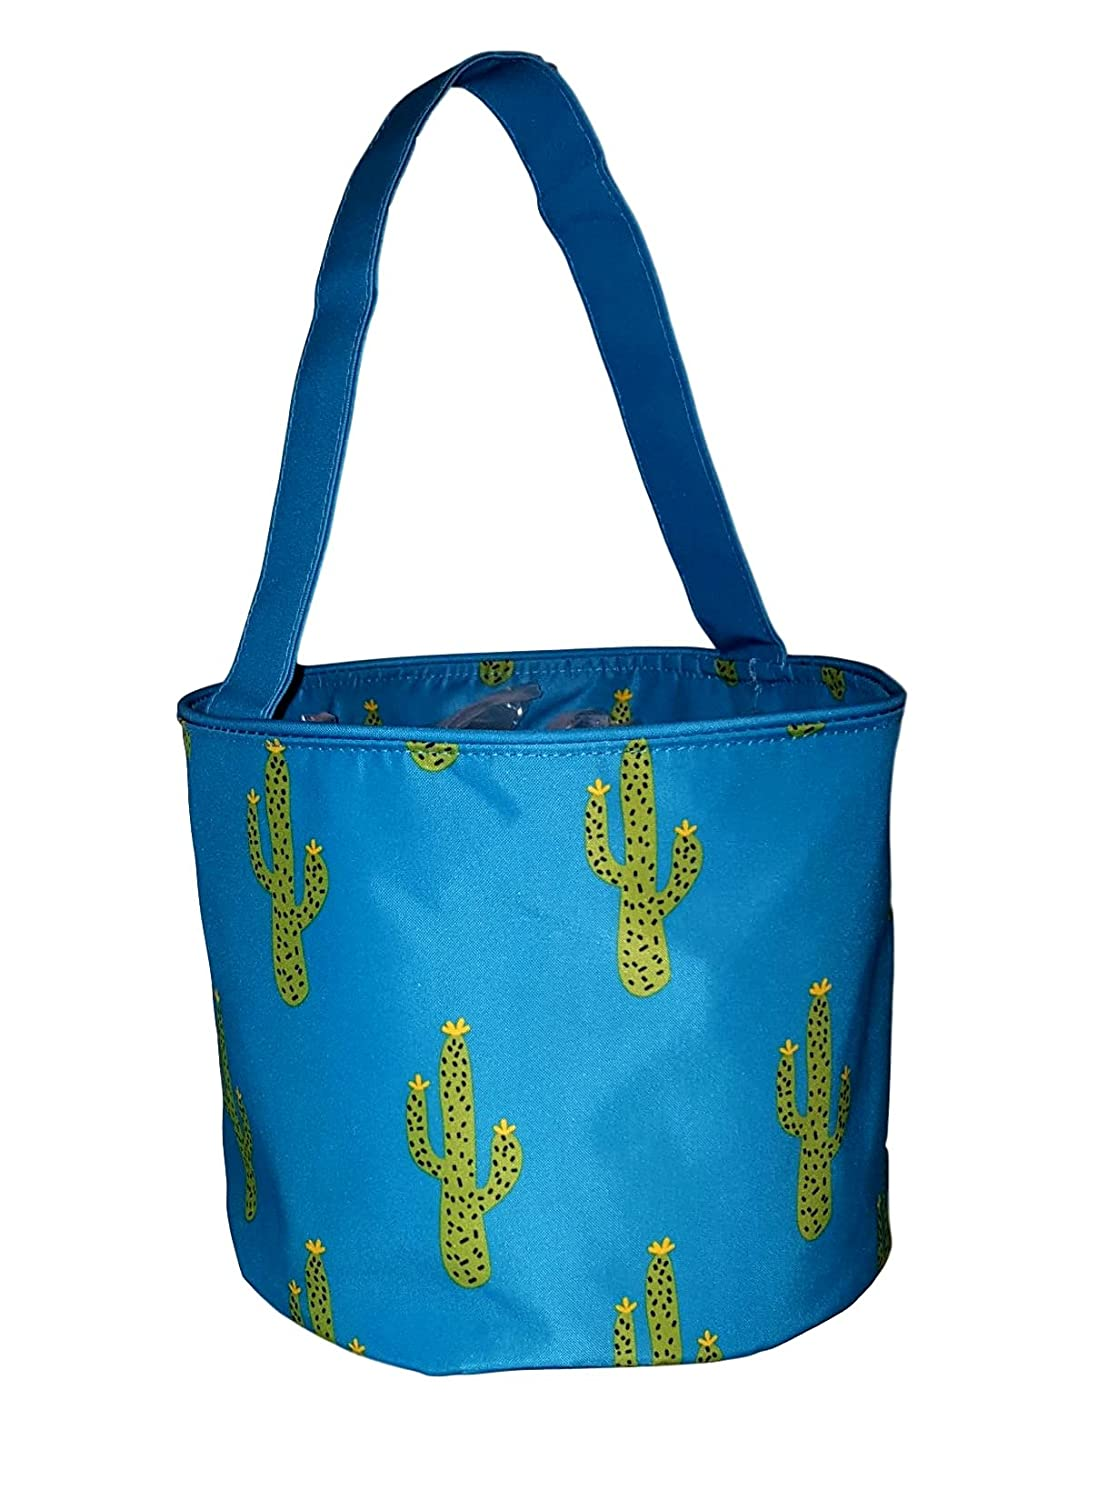 Fabric Bucket Tote Bag for Children - Toys - Easter Basket - Can Be Personalized